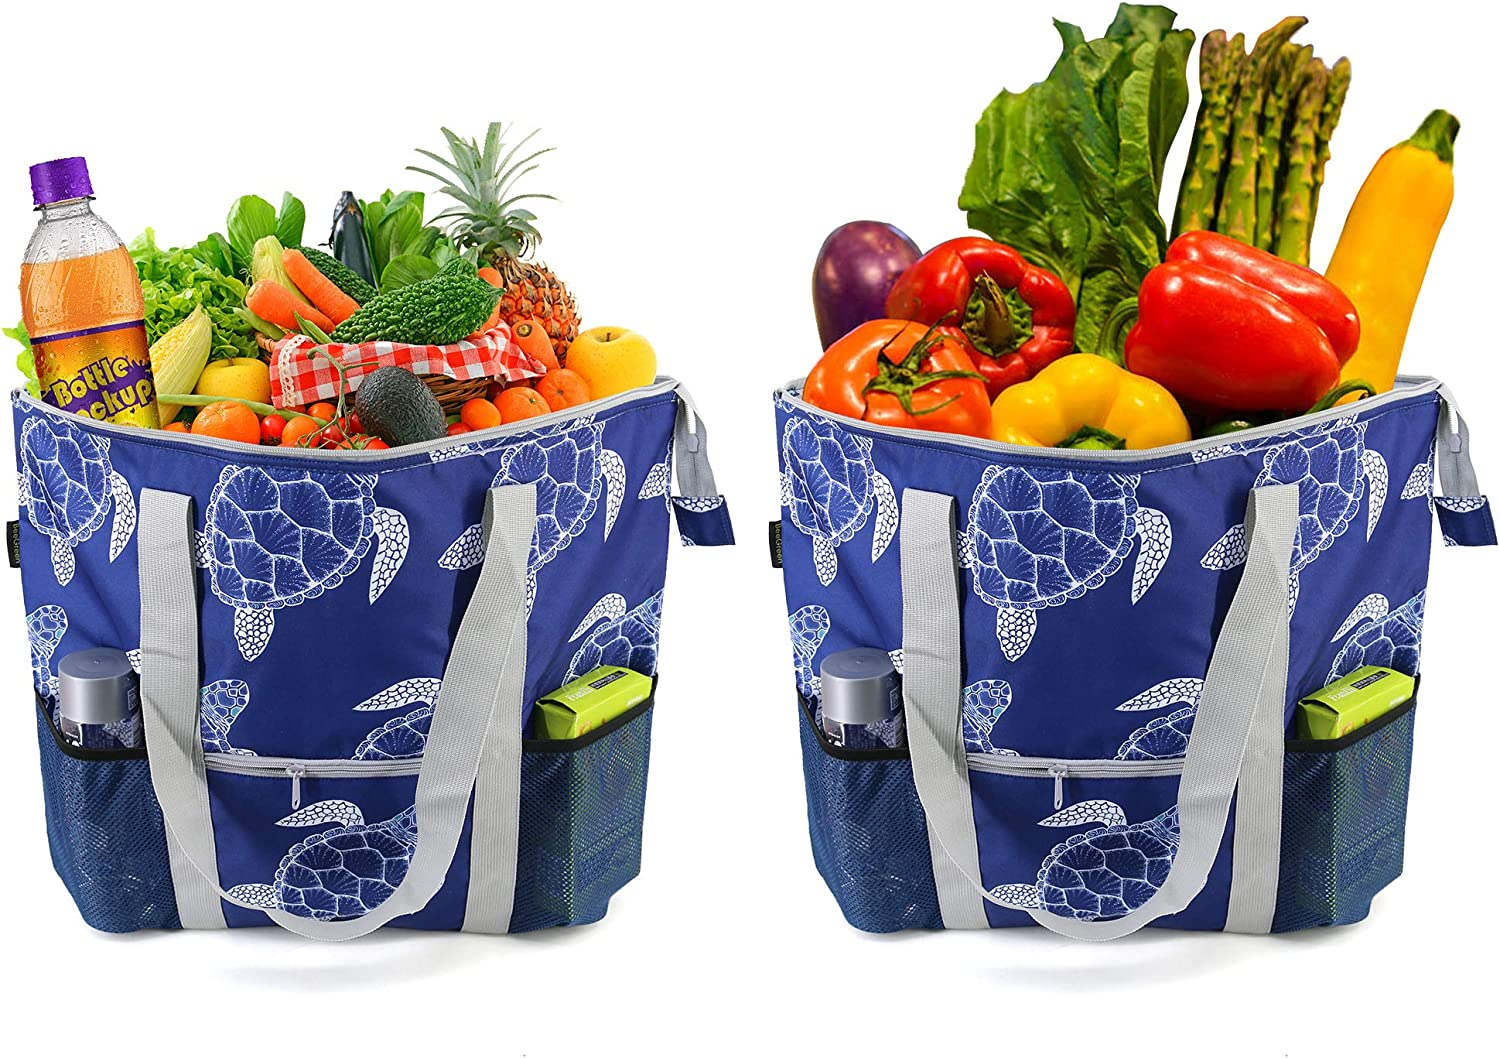 Navy Blue Cooler Bags for Shopping Extra Large Durable Insulated Zipper Grocery Bags for Hot Cold Frozen Food Transport Thermal Totes Set of 2 Cute Turtle Animal Printed